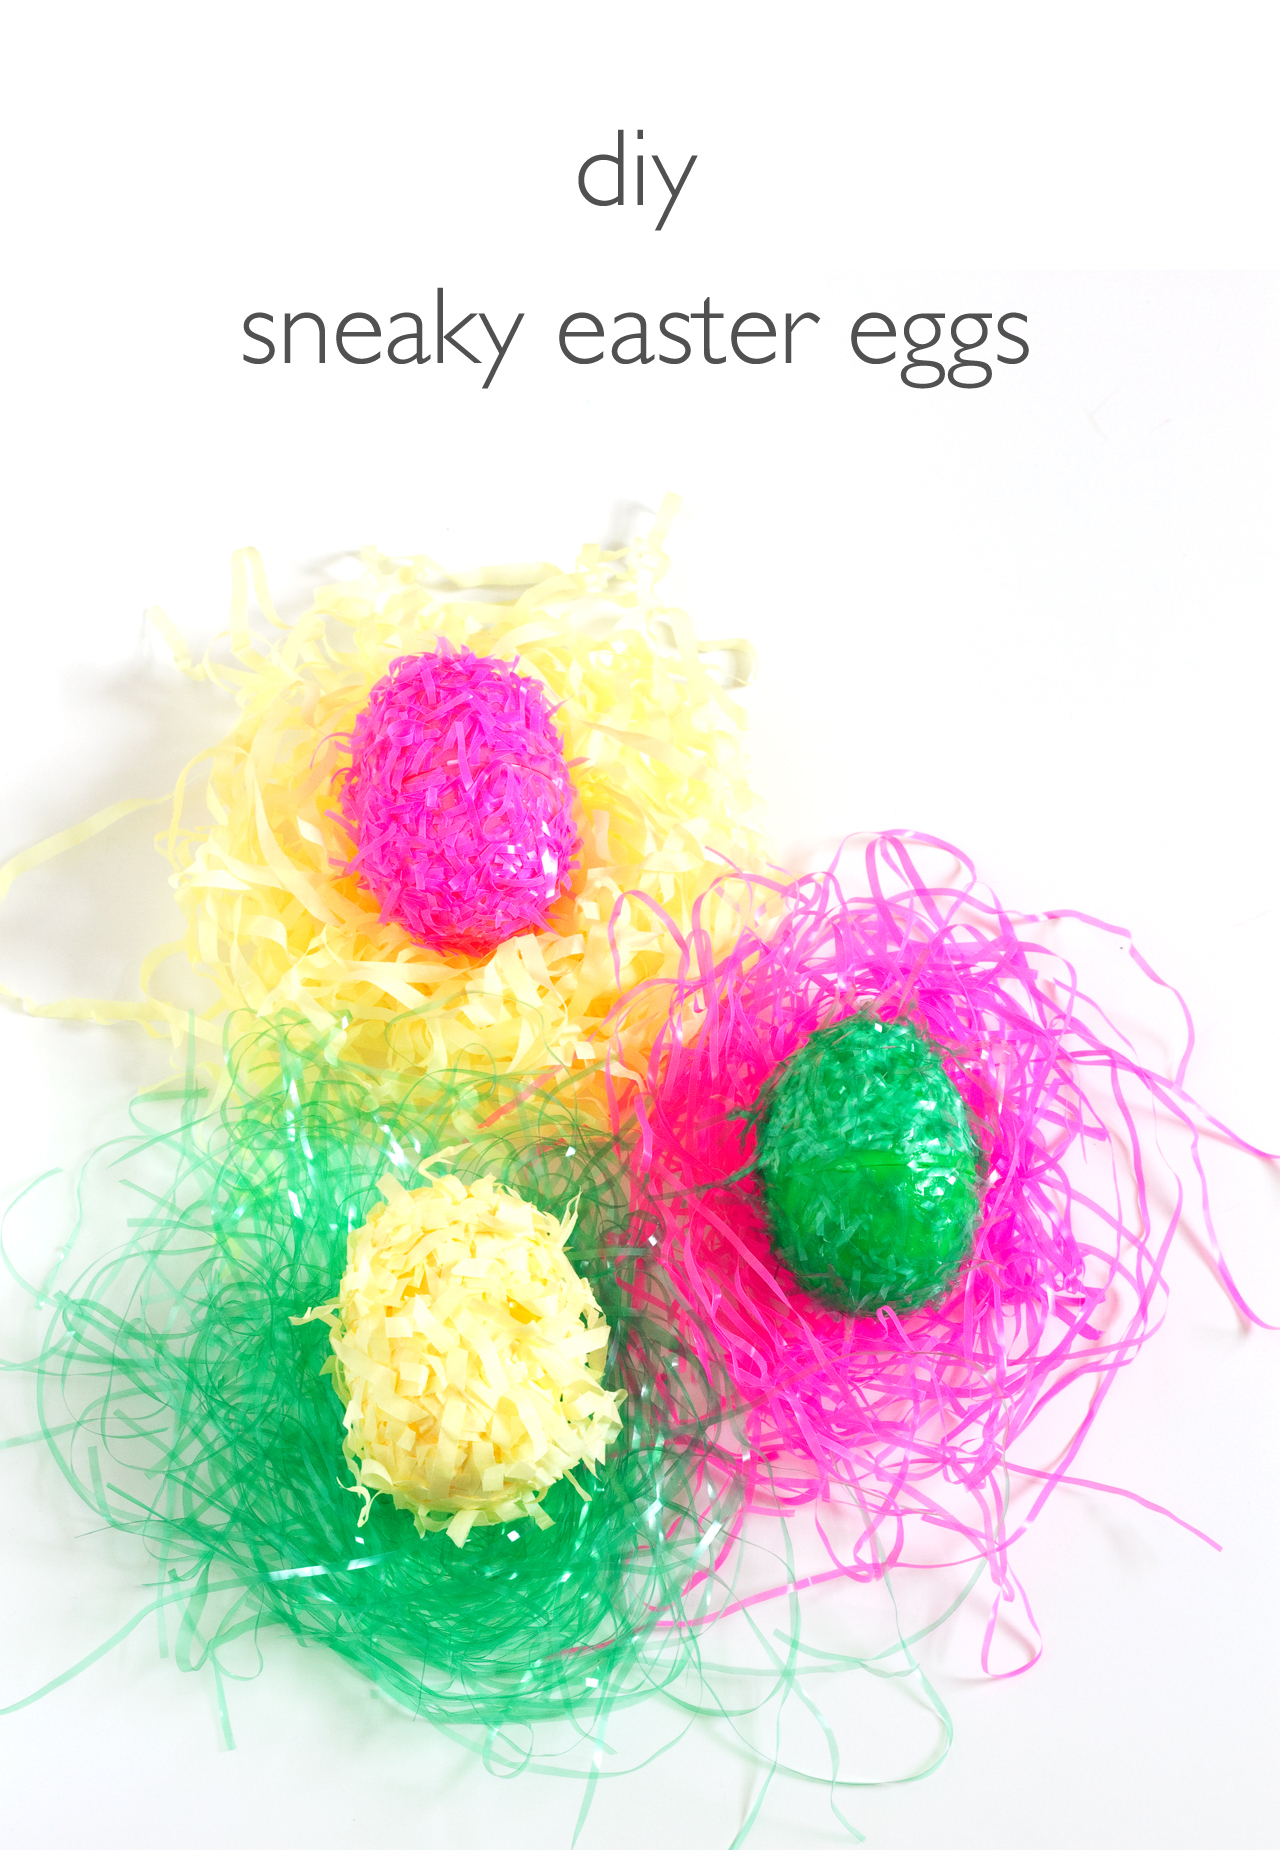 DIY Sneaky Easter Eggs